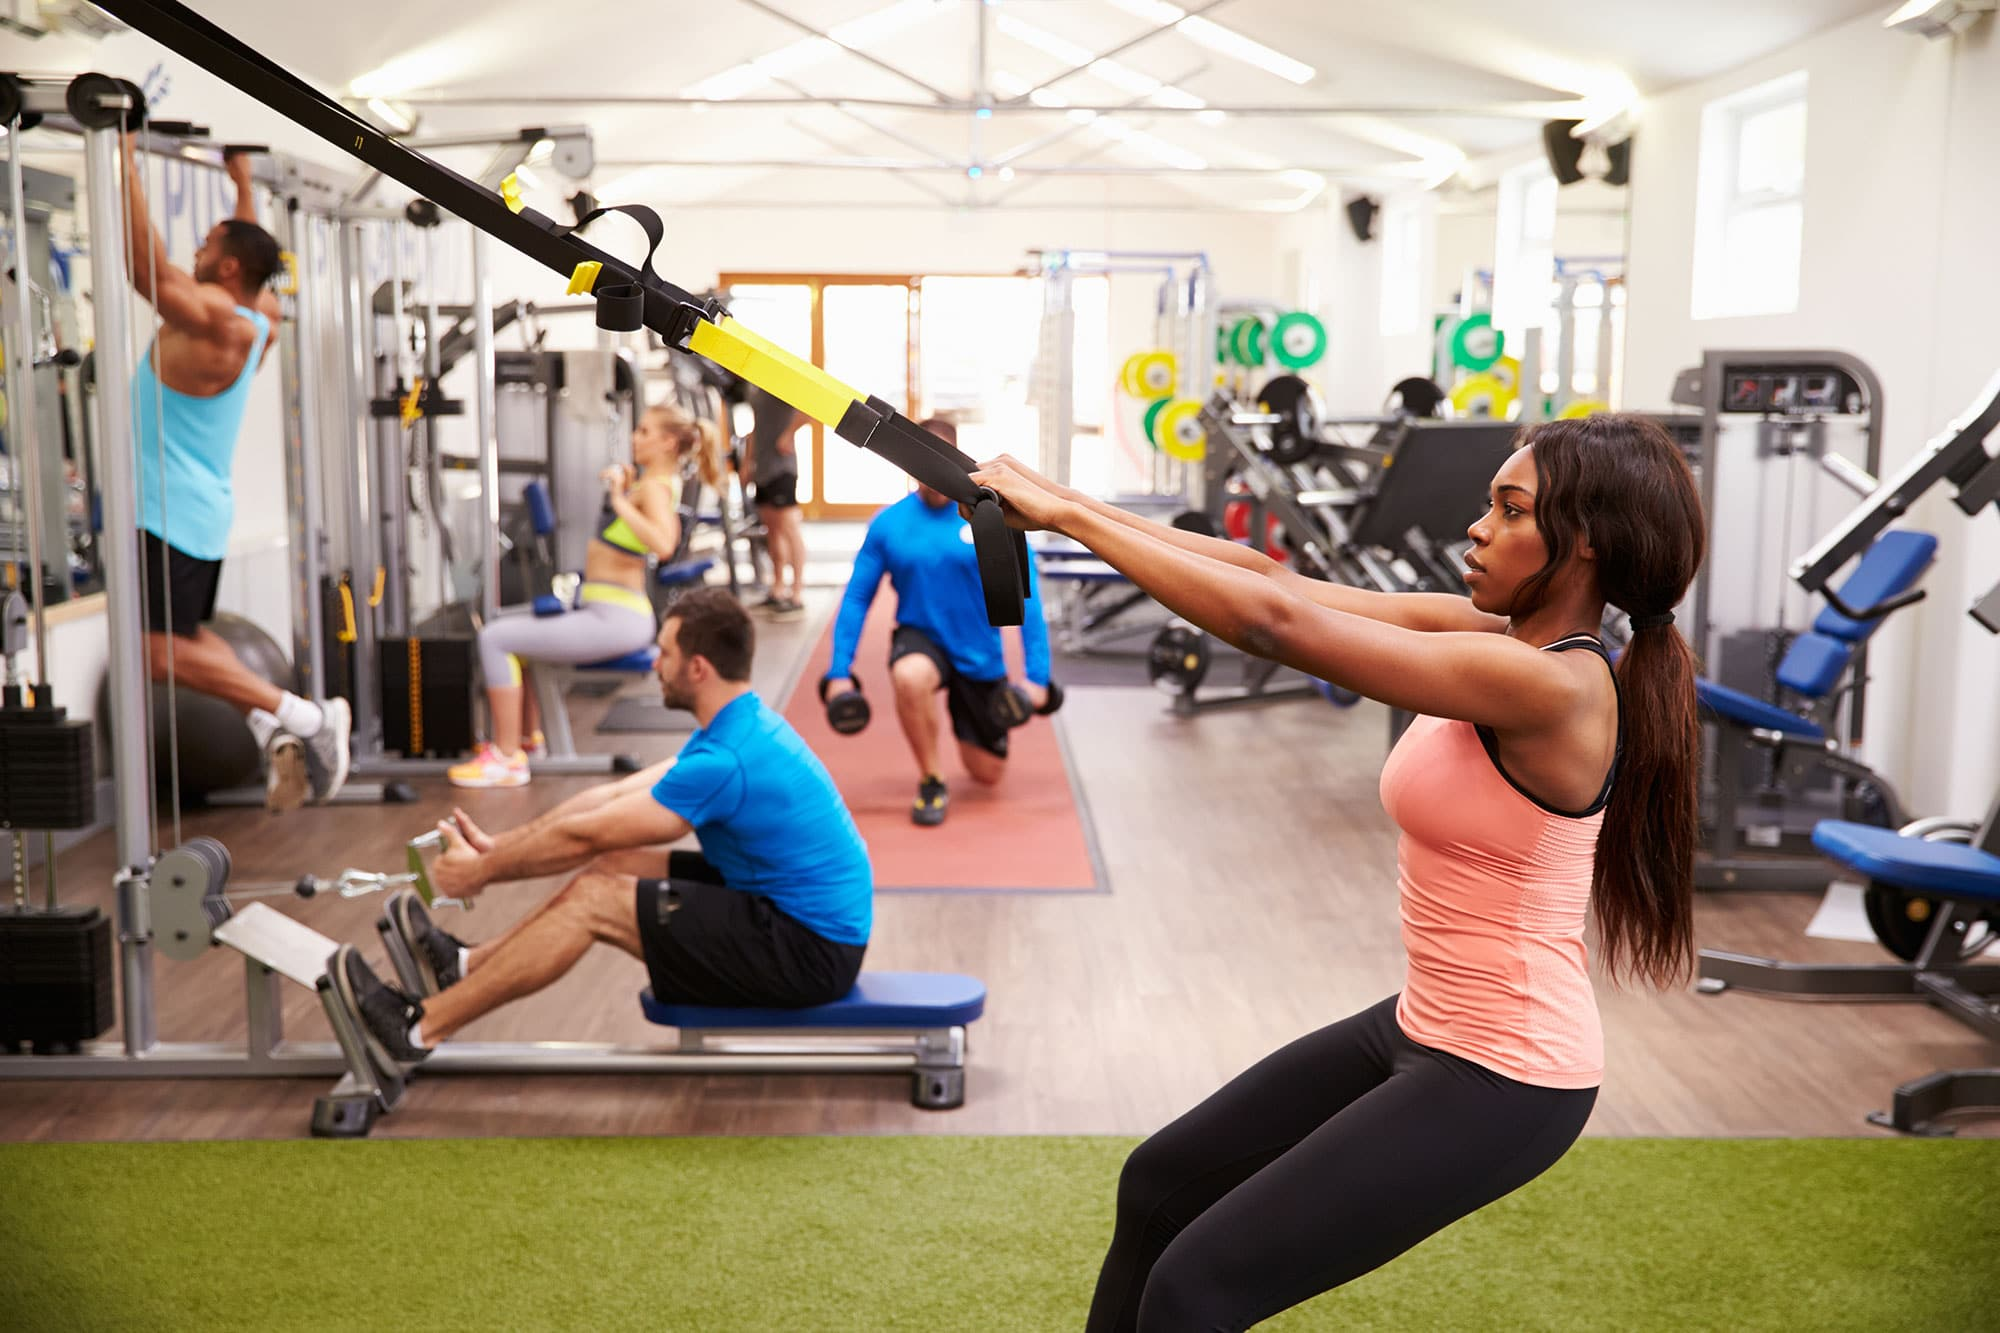 ukactive welcomes reopening date for physical activity sector in Scotland